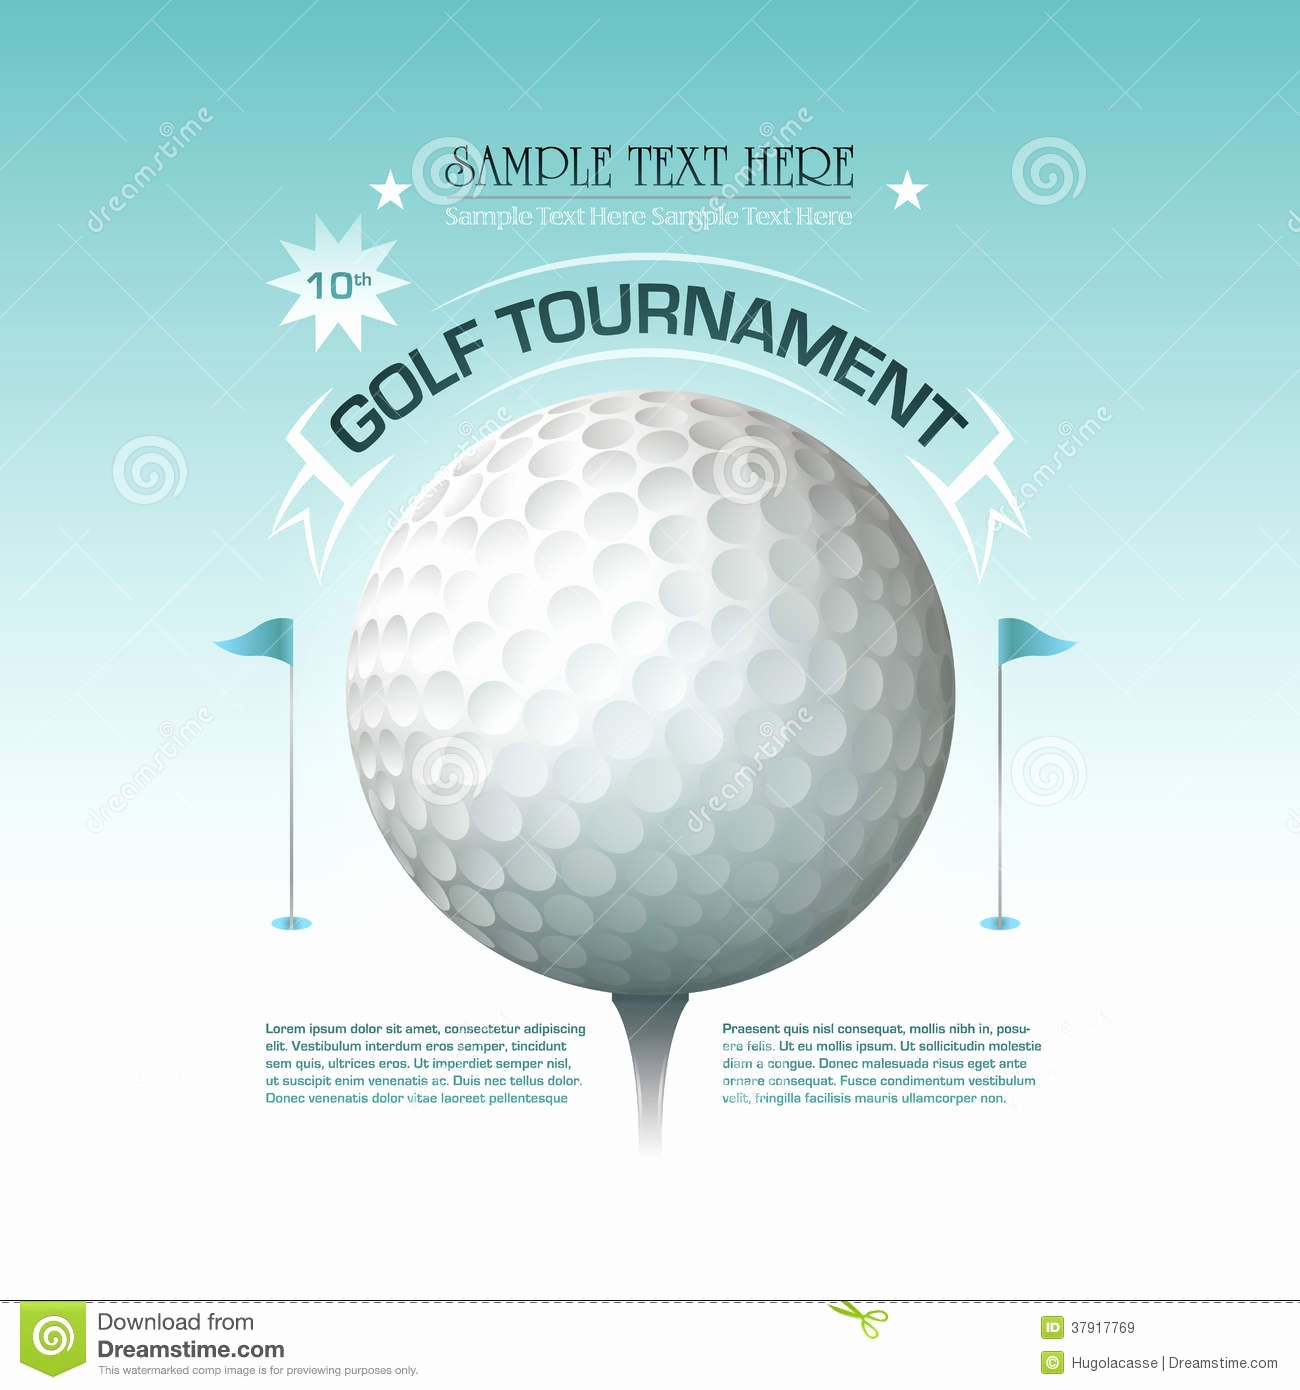 Golf Outing Invitation Template Inspirational Golf tournament Invitation Banner Background Royalty Free